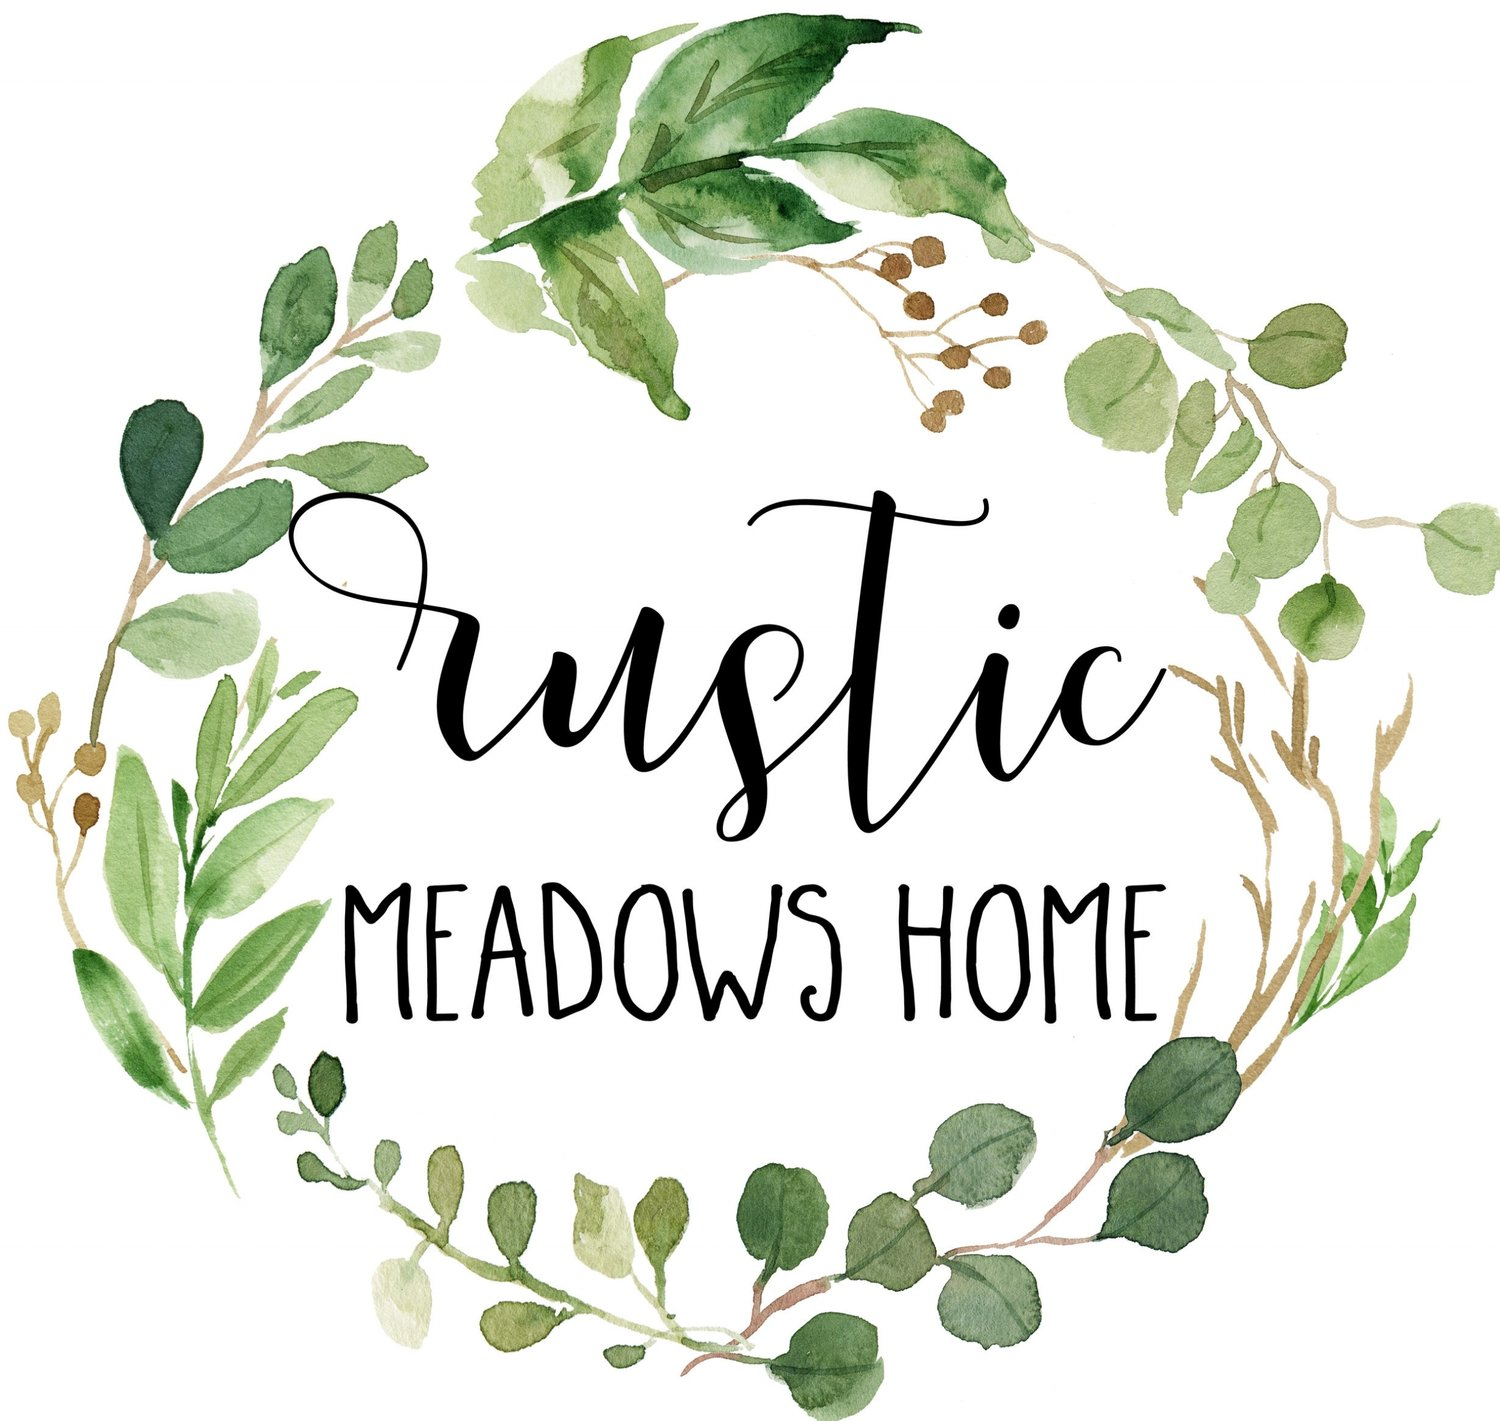 Rustic Meadows Home